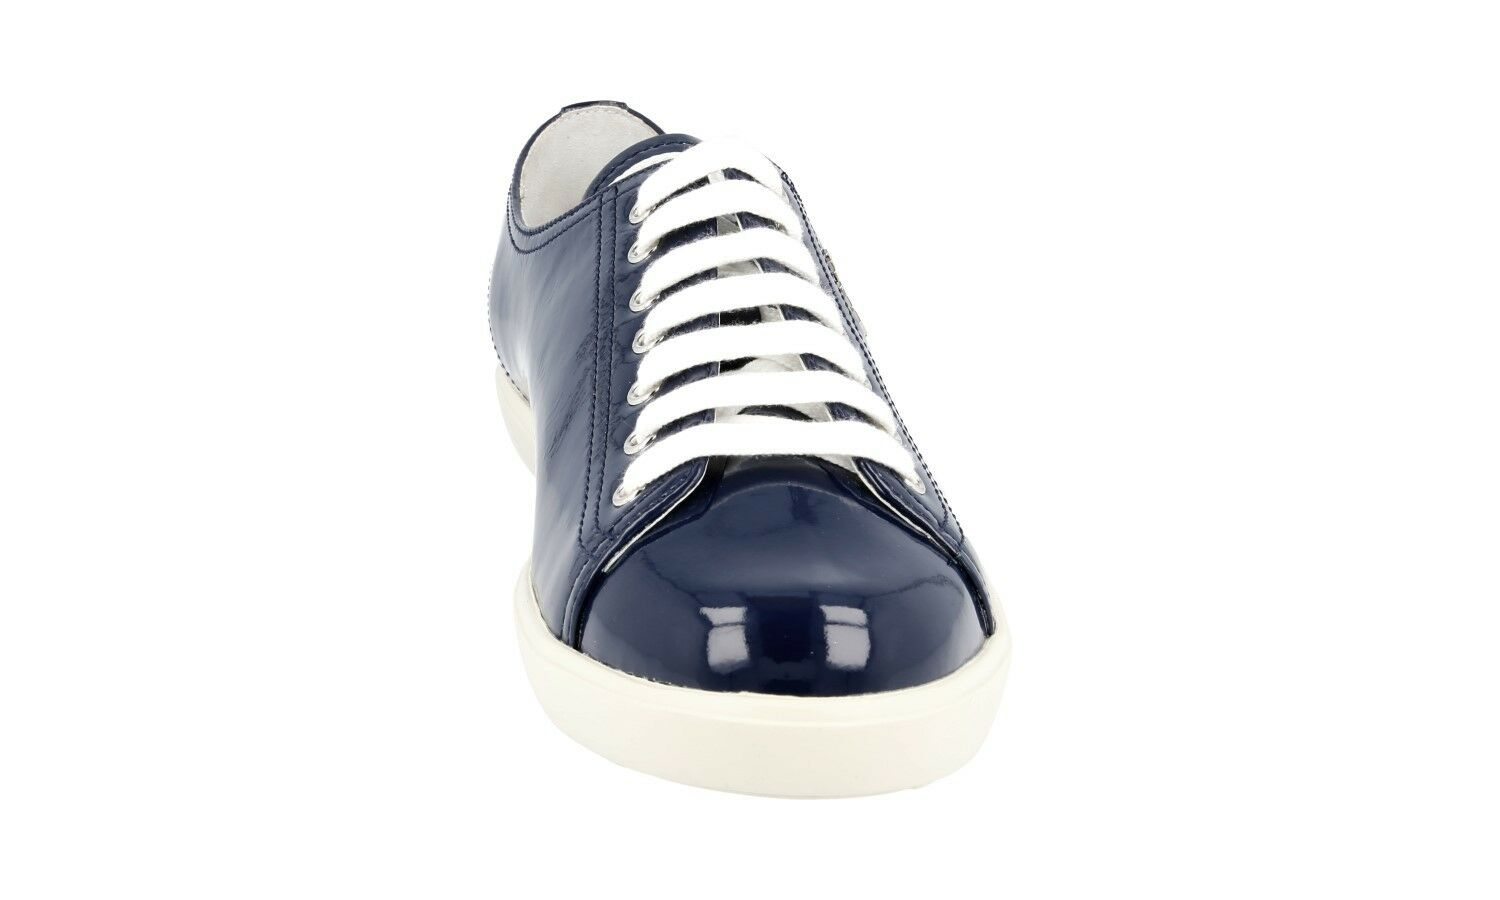 LUXUS LUXUS LUXUS PRADA SNEAKER SCHUHE 3E5534 ROYAL NEU NEW 40,5 41 UK 7.5 091fb3